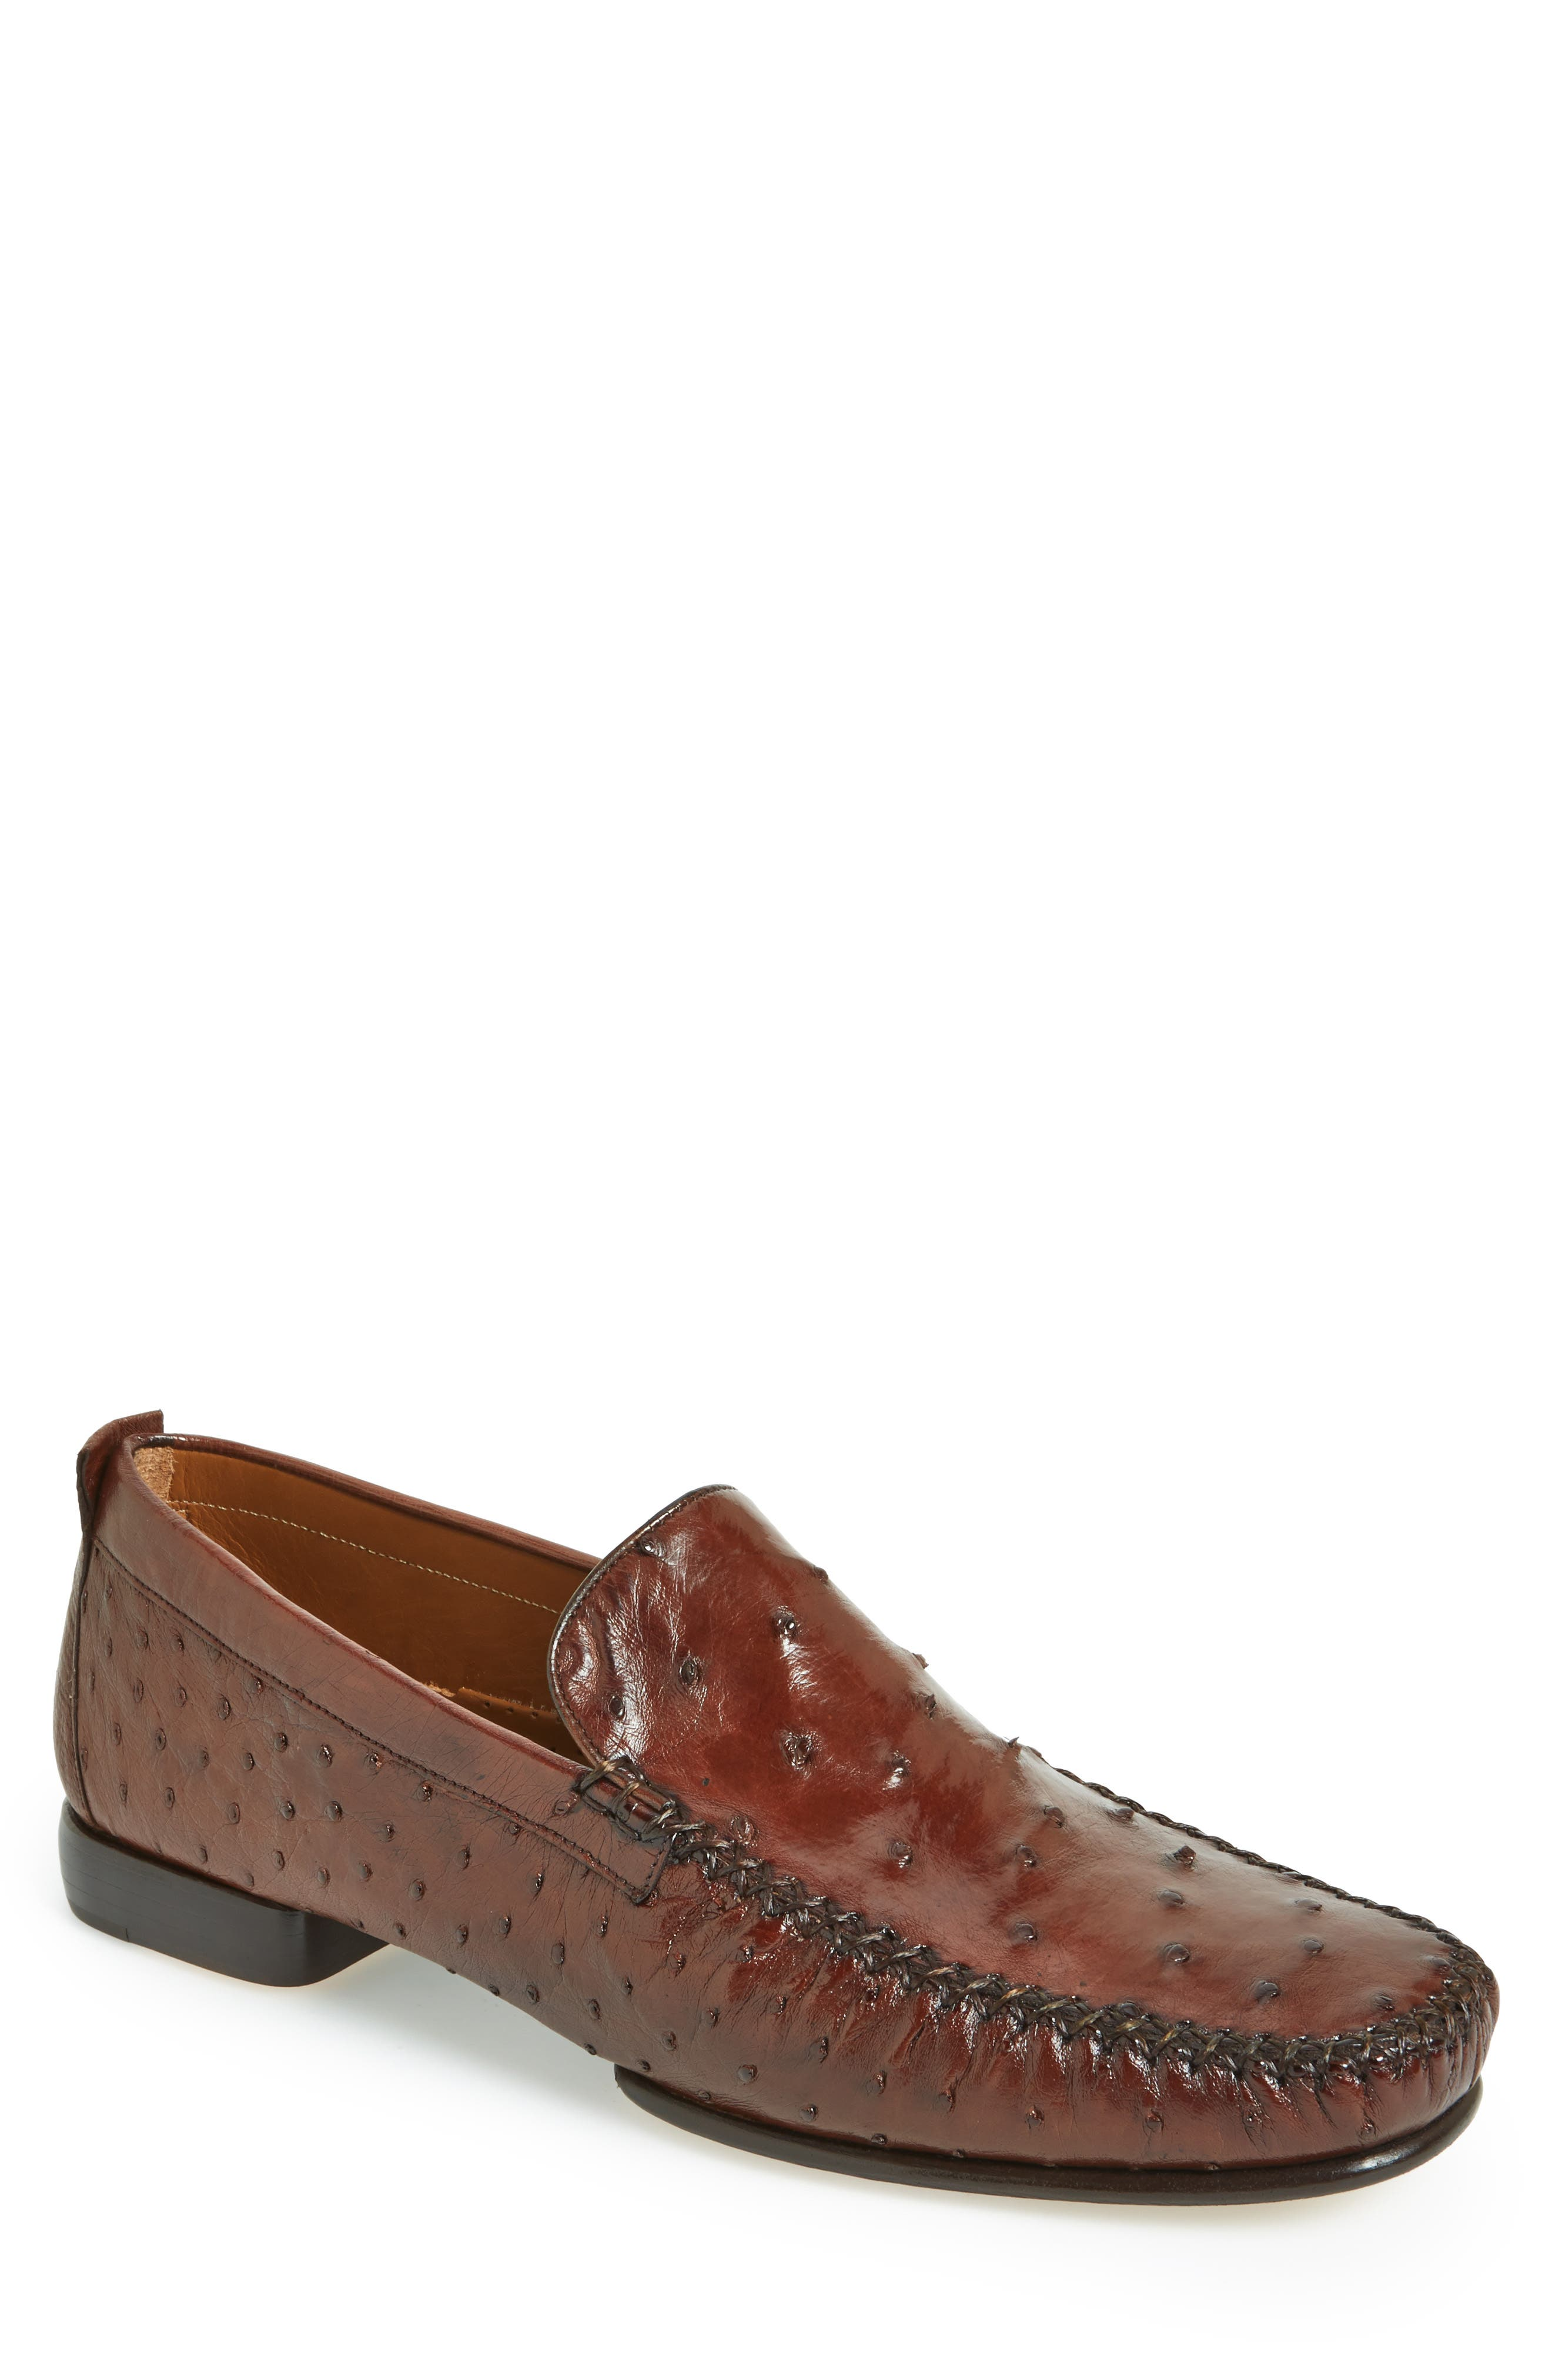 'Rollini' Ostrich Leather Loafer,                             Alternate thumbnail 5, color,                             TOBACCO